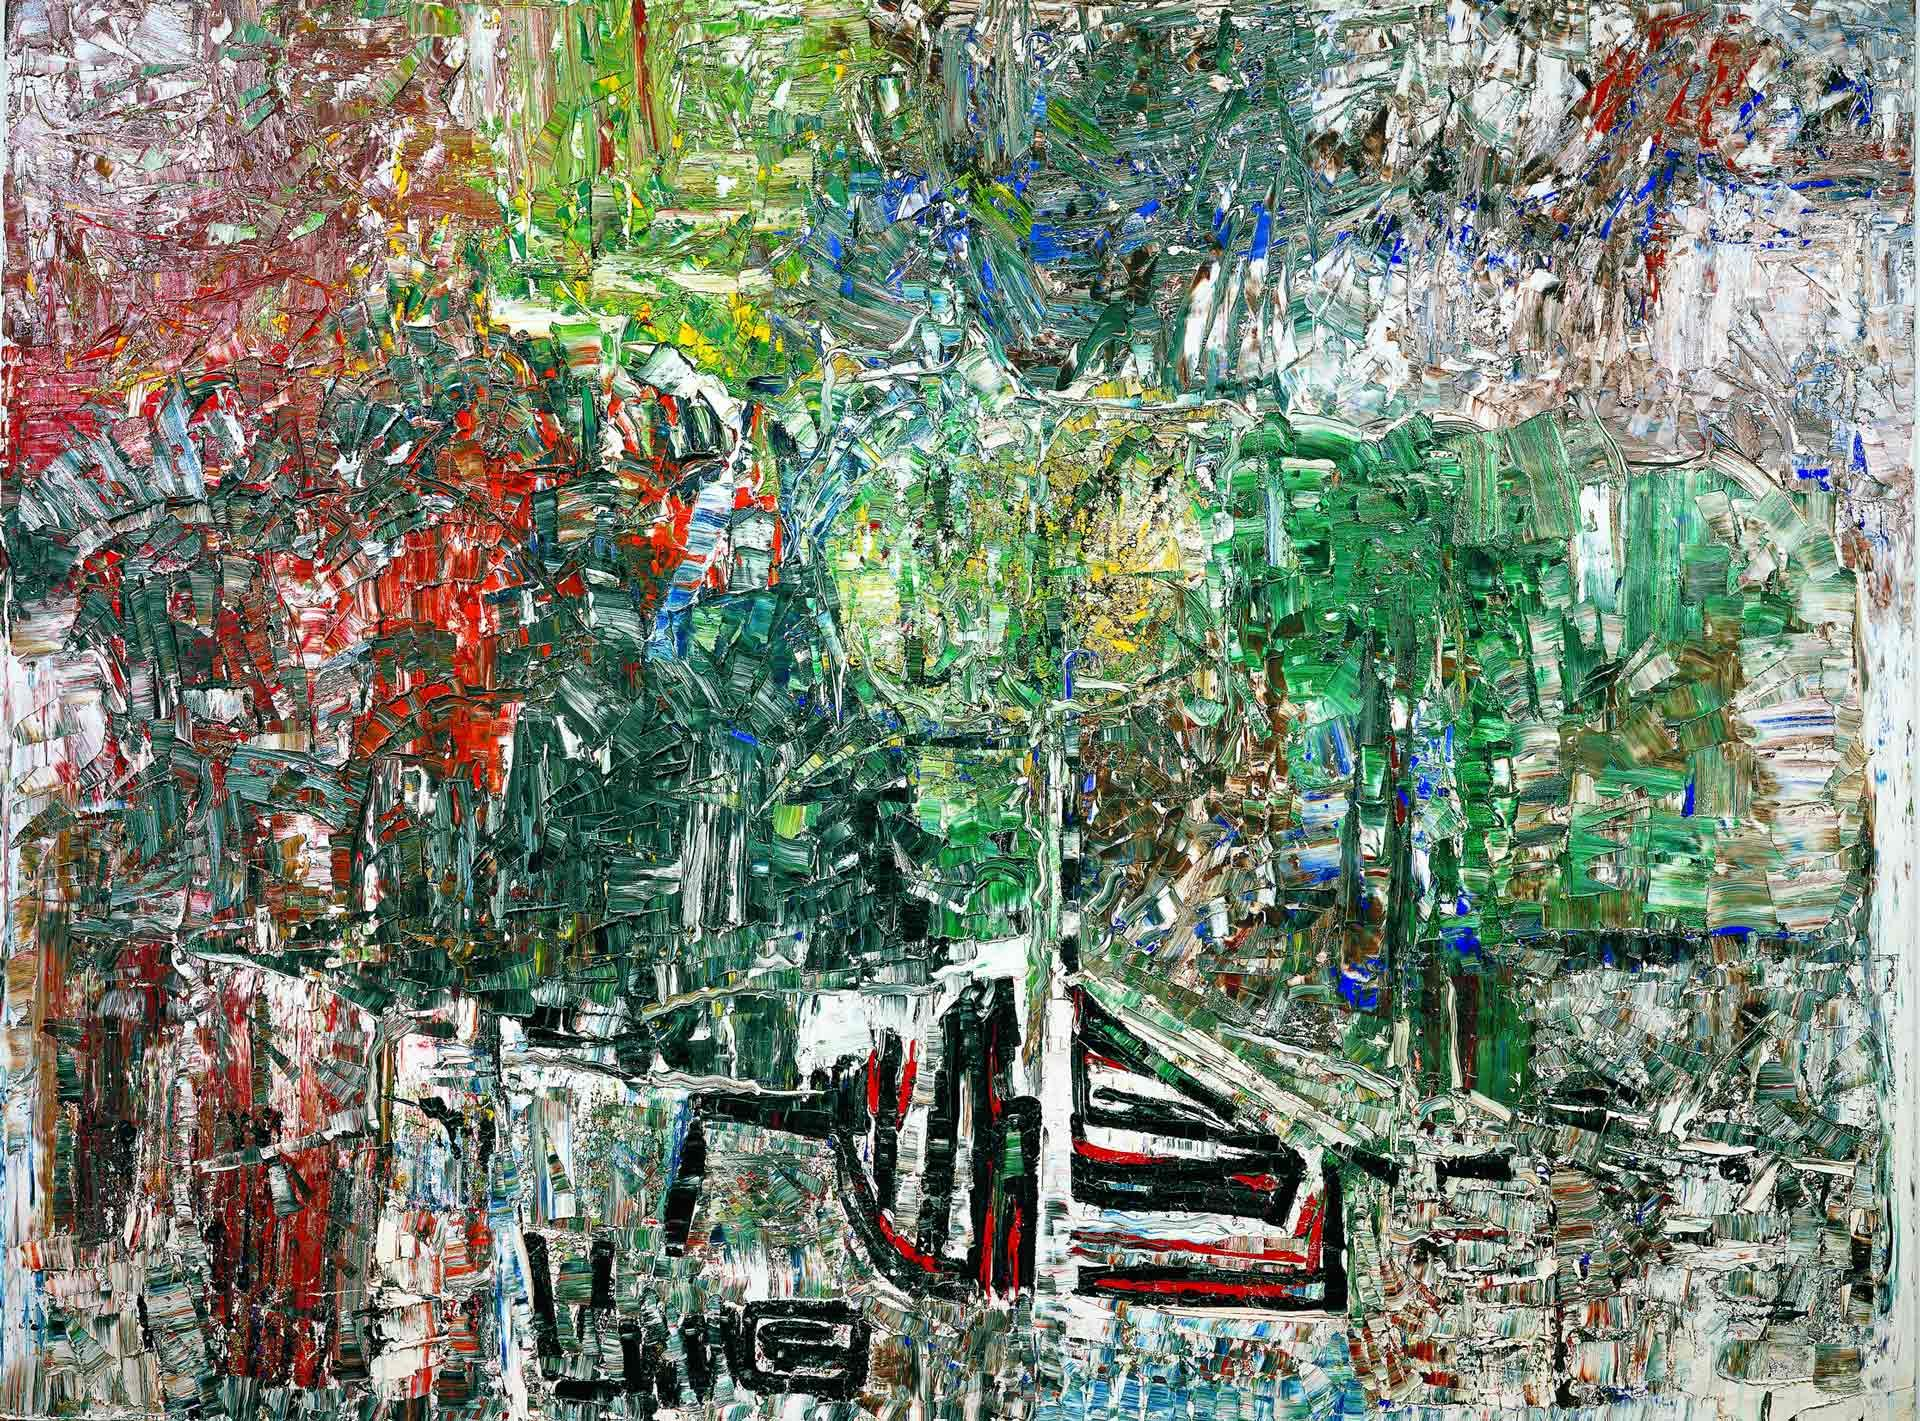 Jean Paul Riopelle (1923-2002), L'étang – Hommage à Grey Owl, 1970, oil on canvas, 299.5 x 400 cm. The Montreal Museum of Fine Arts, gift of the Canadian Imperial Bank of Commerce. Inv. 2001.184. © Estate of Jean Paul Riopelle / SOCAN (2020). Photo MMFA, Christine Guest